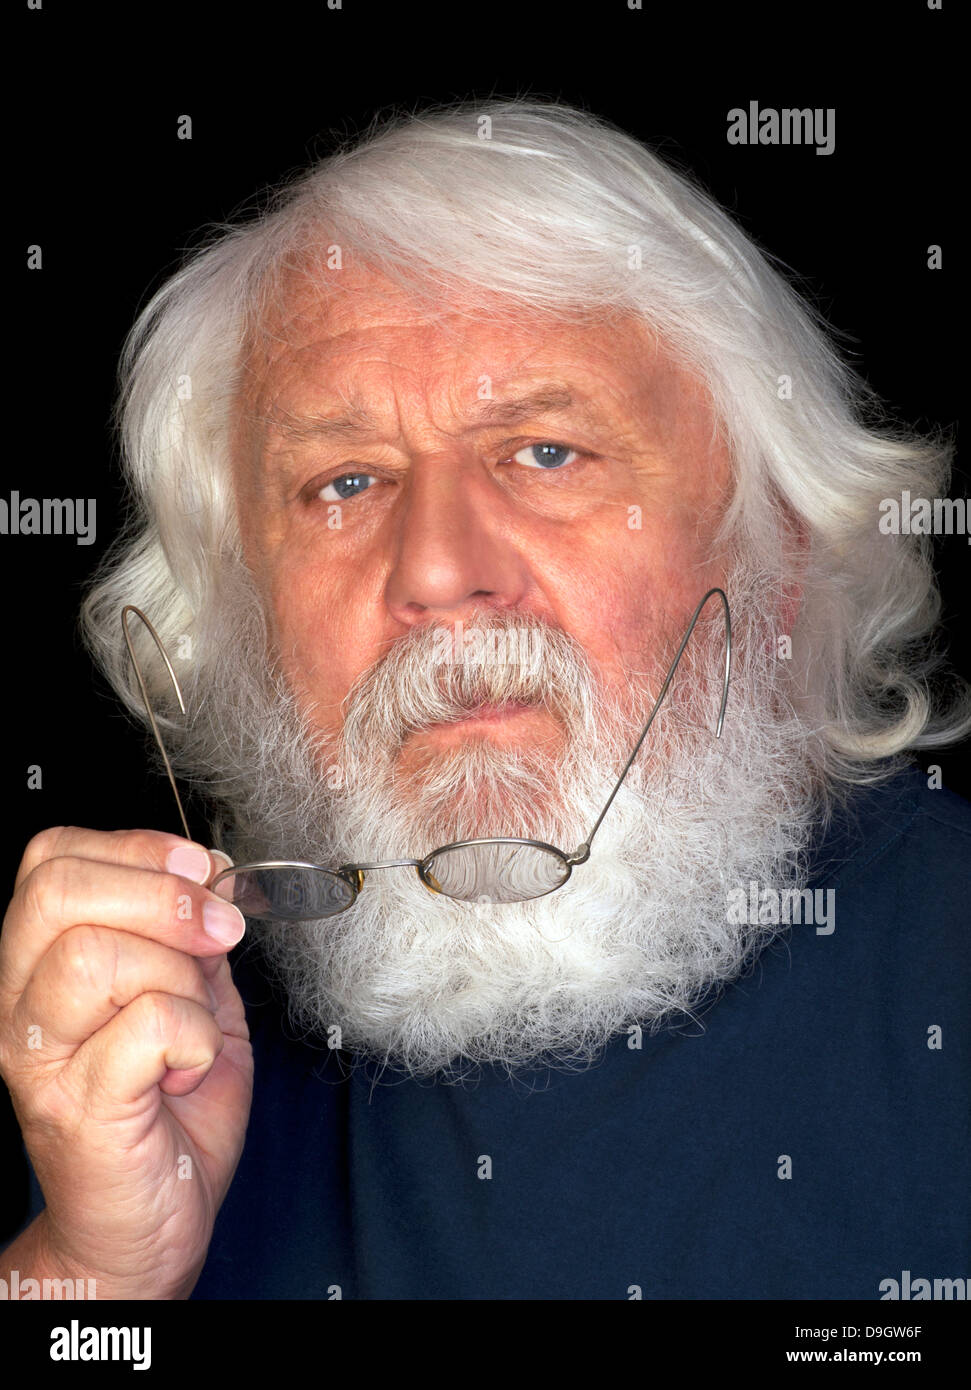 Senior with full beard, thinking with glasses in his hand - Stock Image